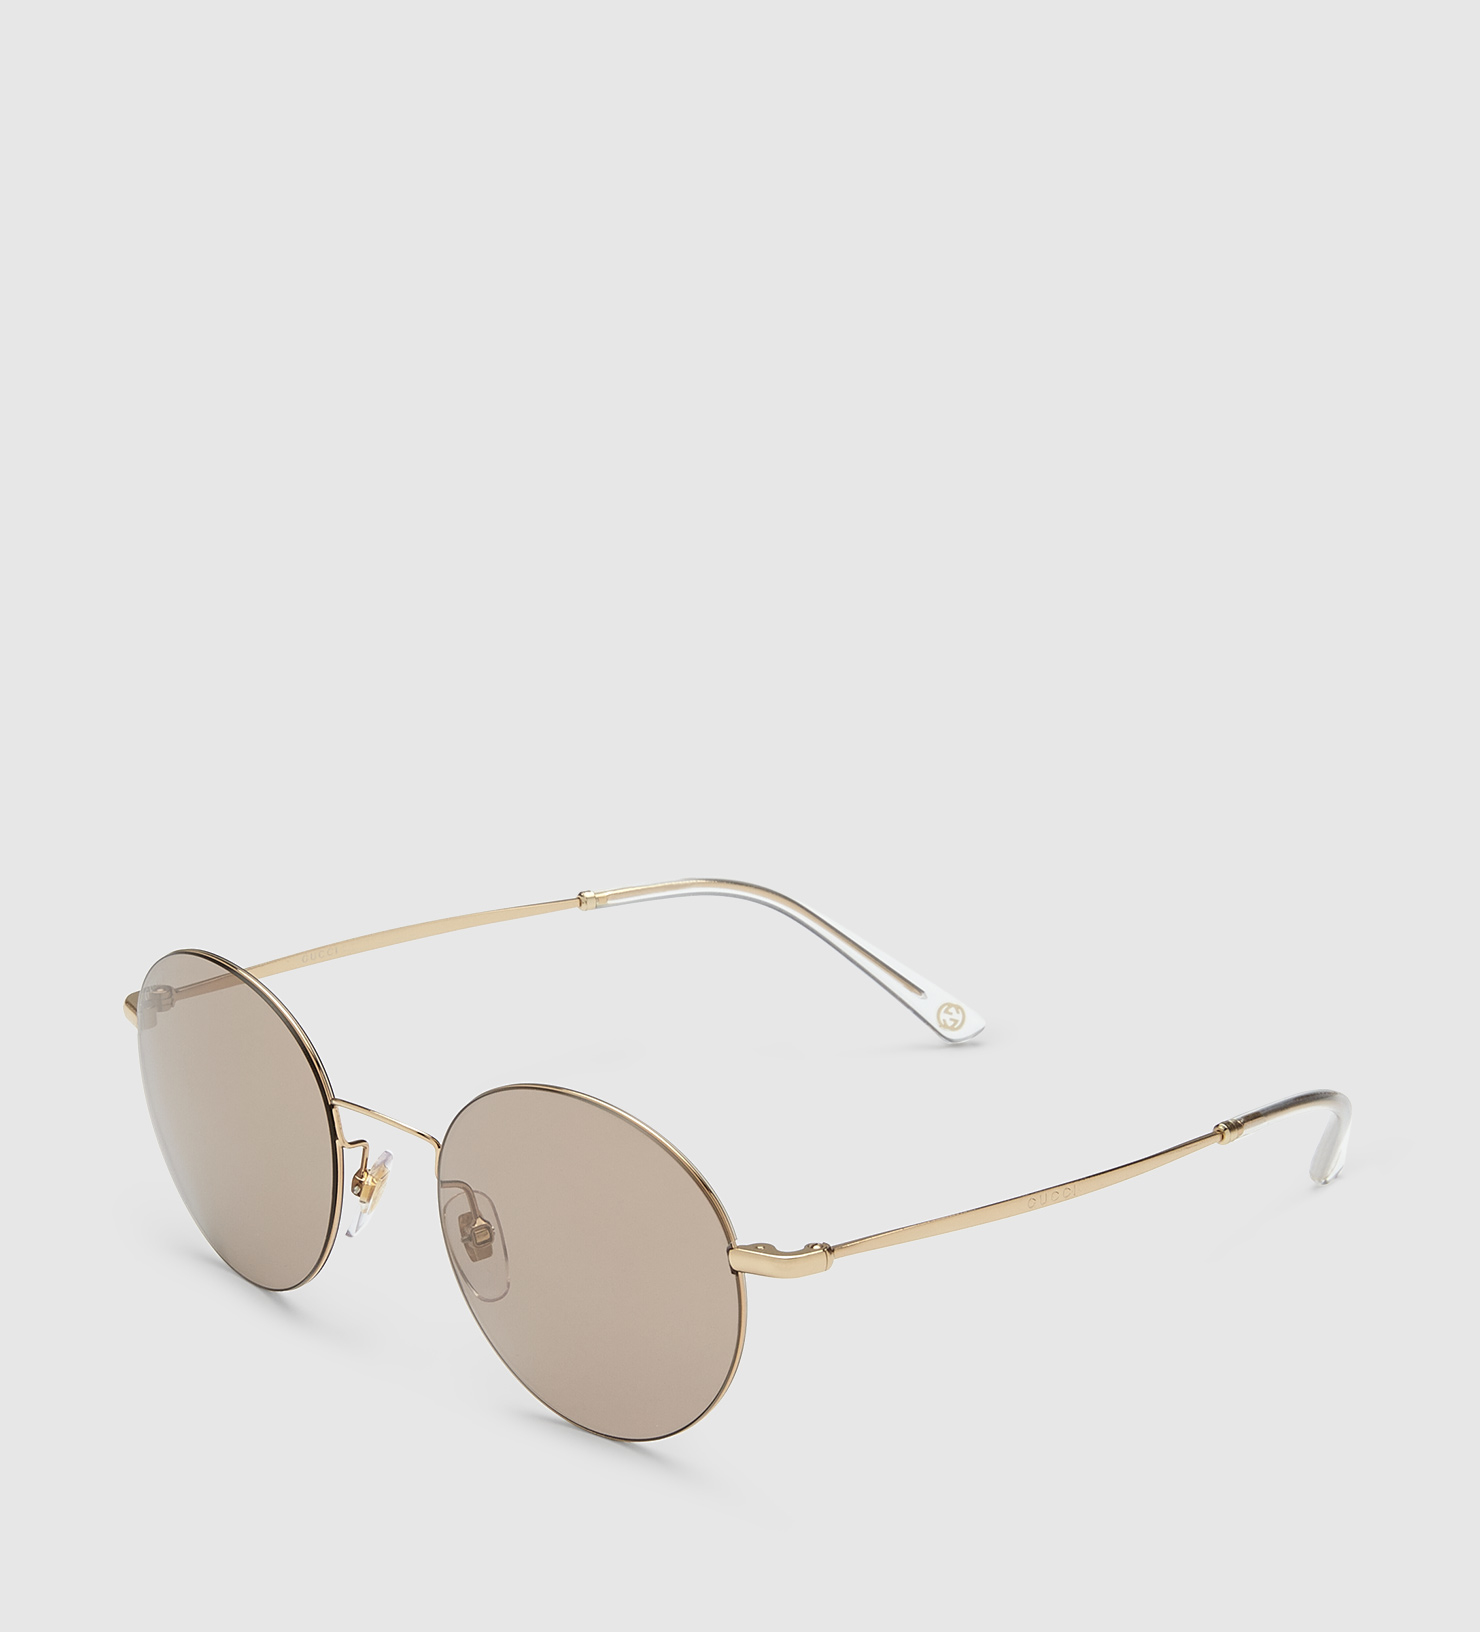 Round Gucci Sunglasses  gucci steel and metal round frame sunglasses in gray lyst